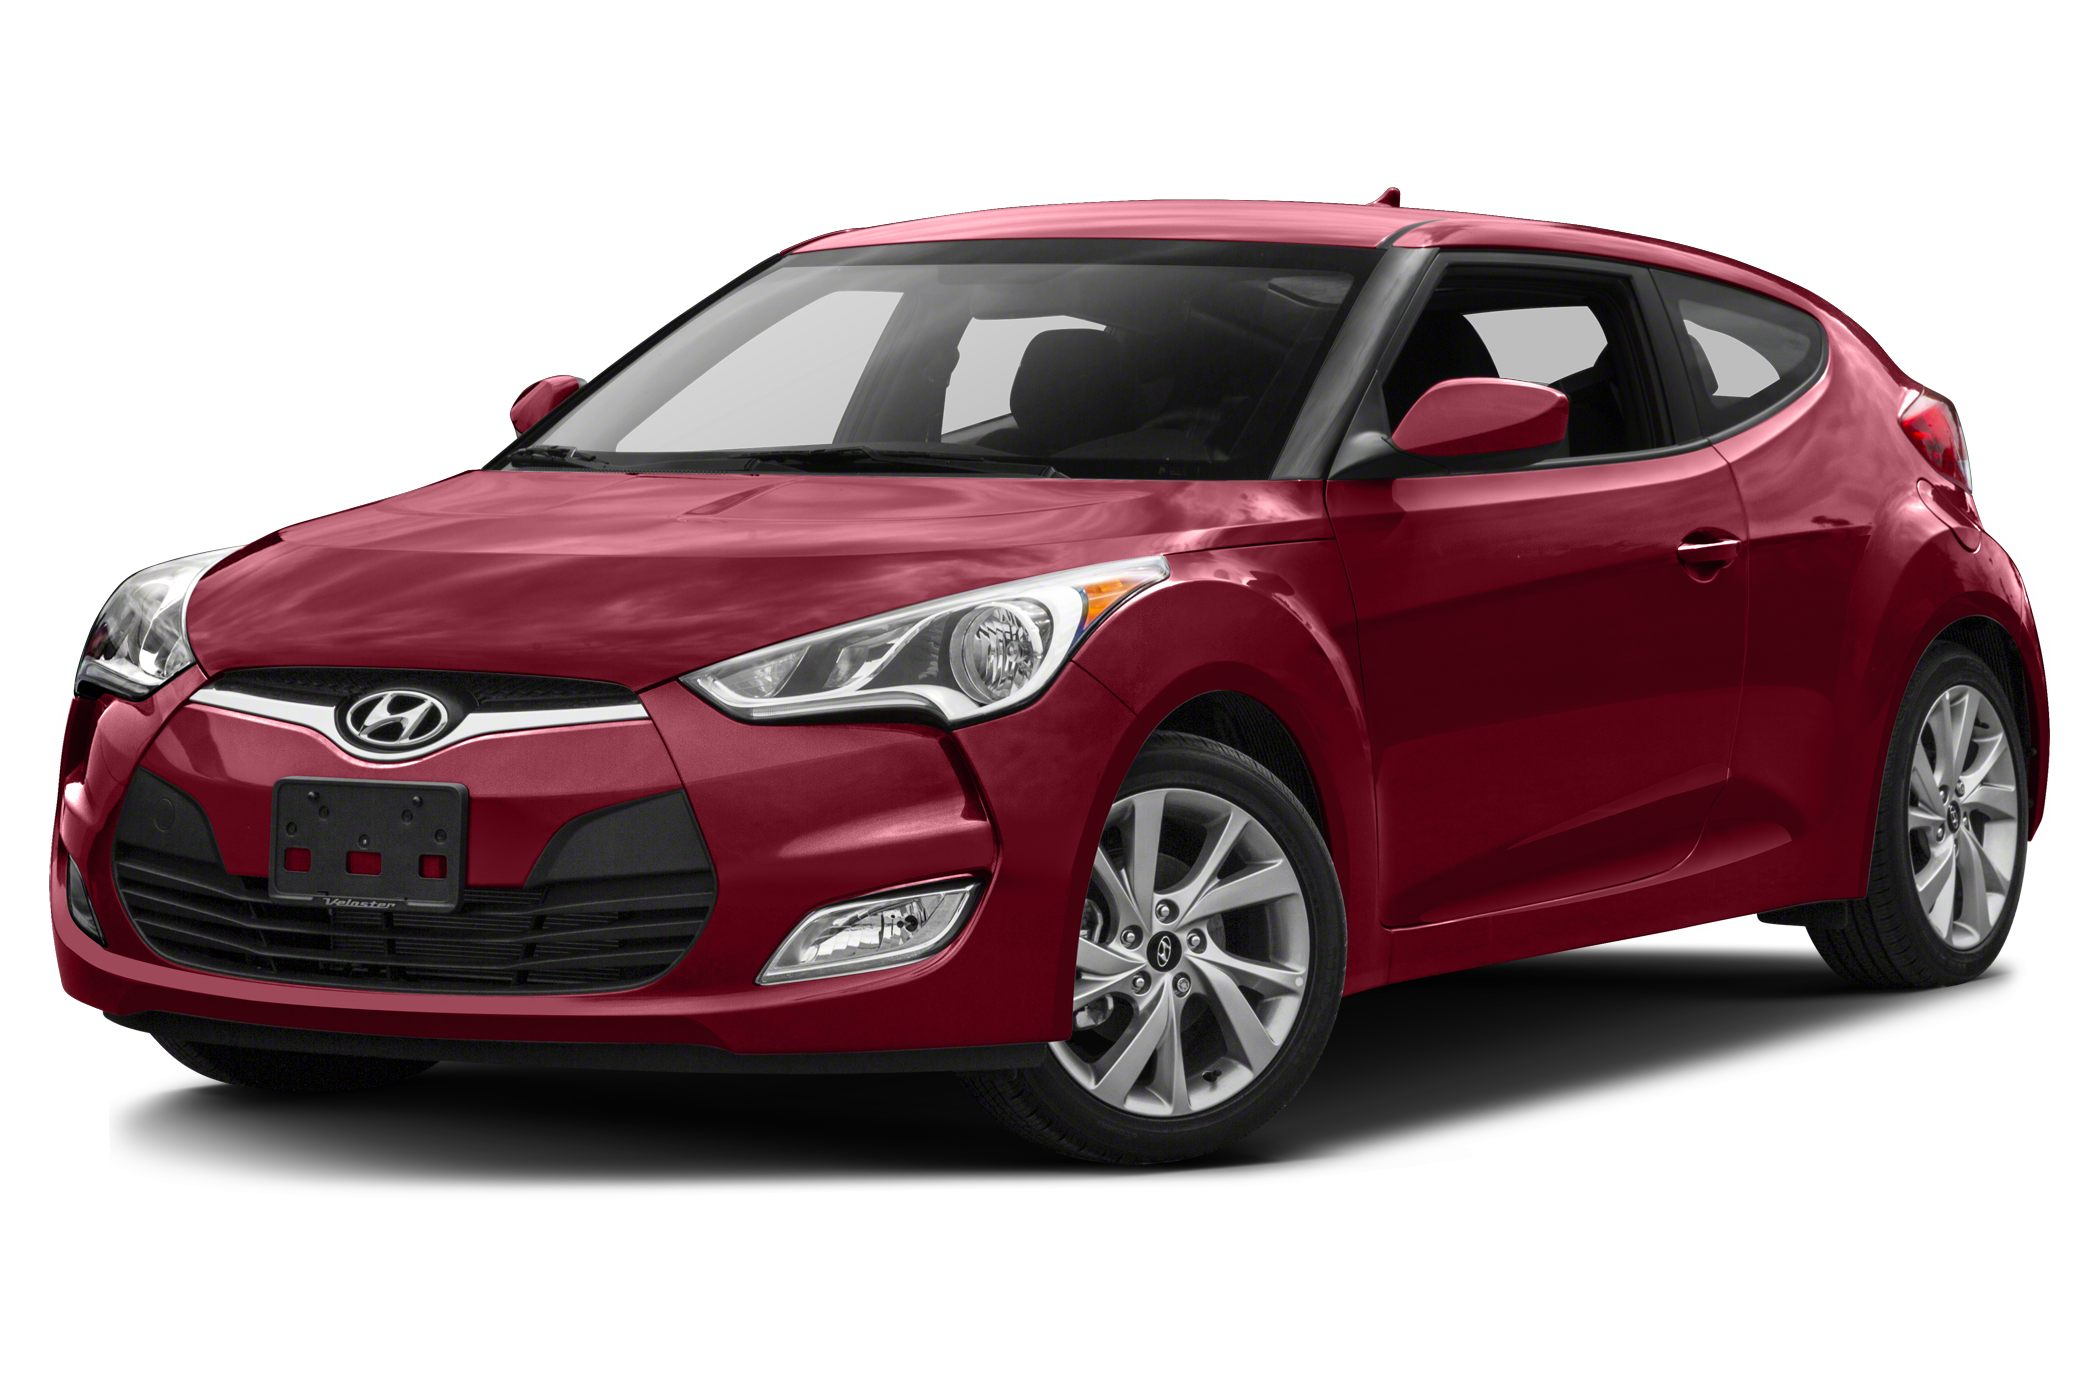 hyundai veloster news photos and buying information autoblog. Black Bedroom Furniture Sets. Home Design Ideas